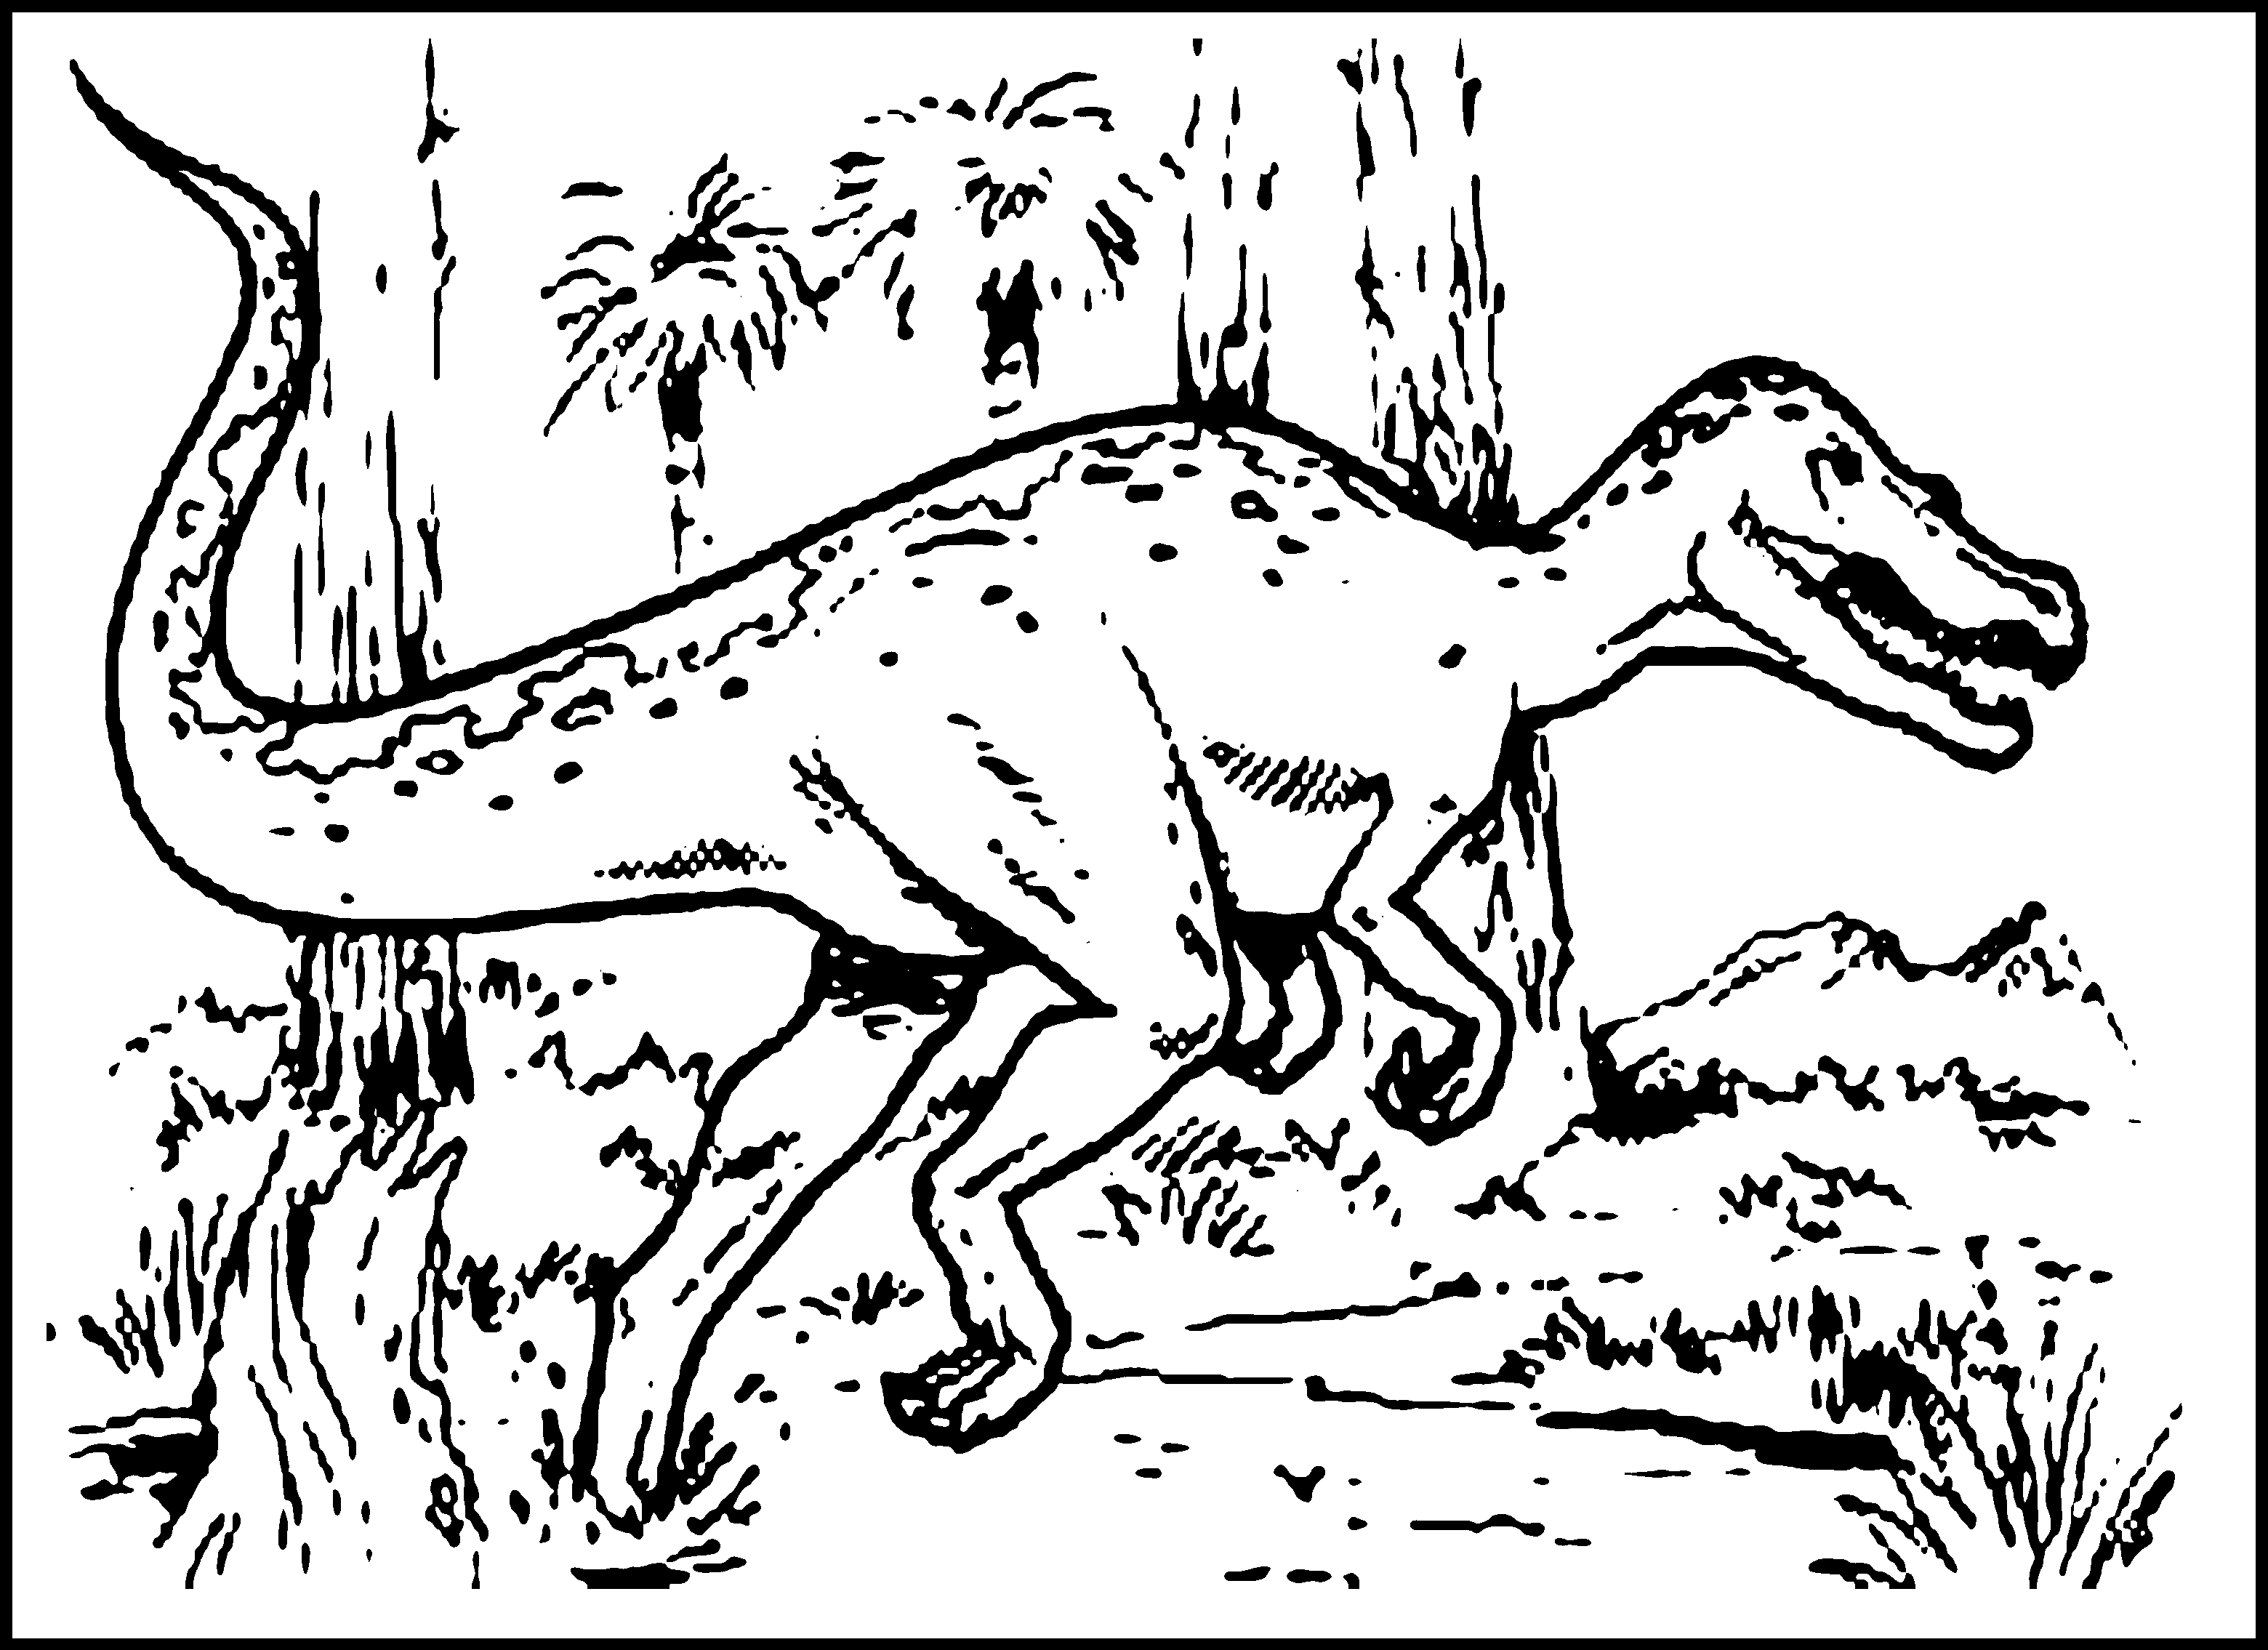 3120x2270 Dinosaur Coloring Pages For Kids And Preschoolers